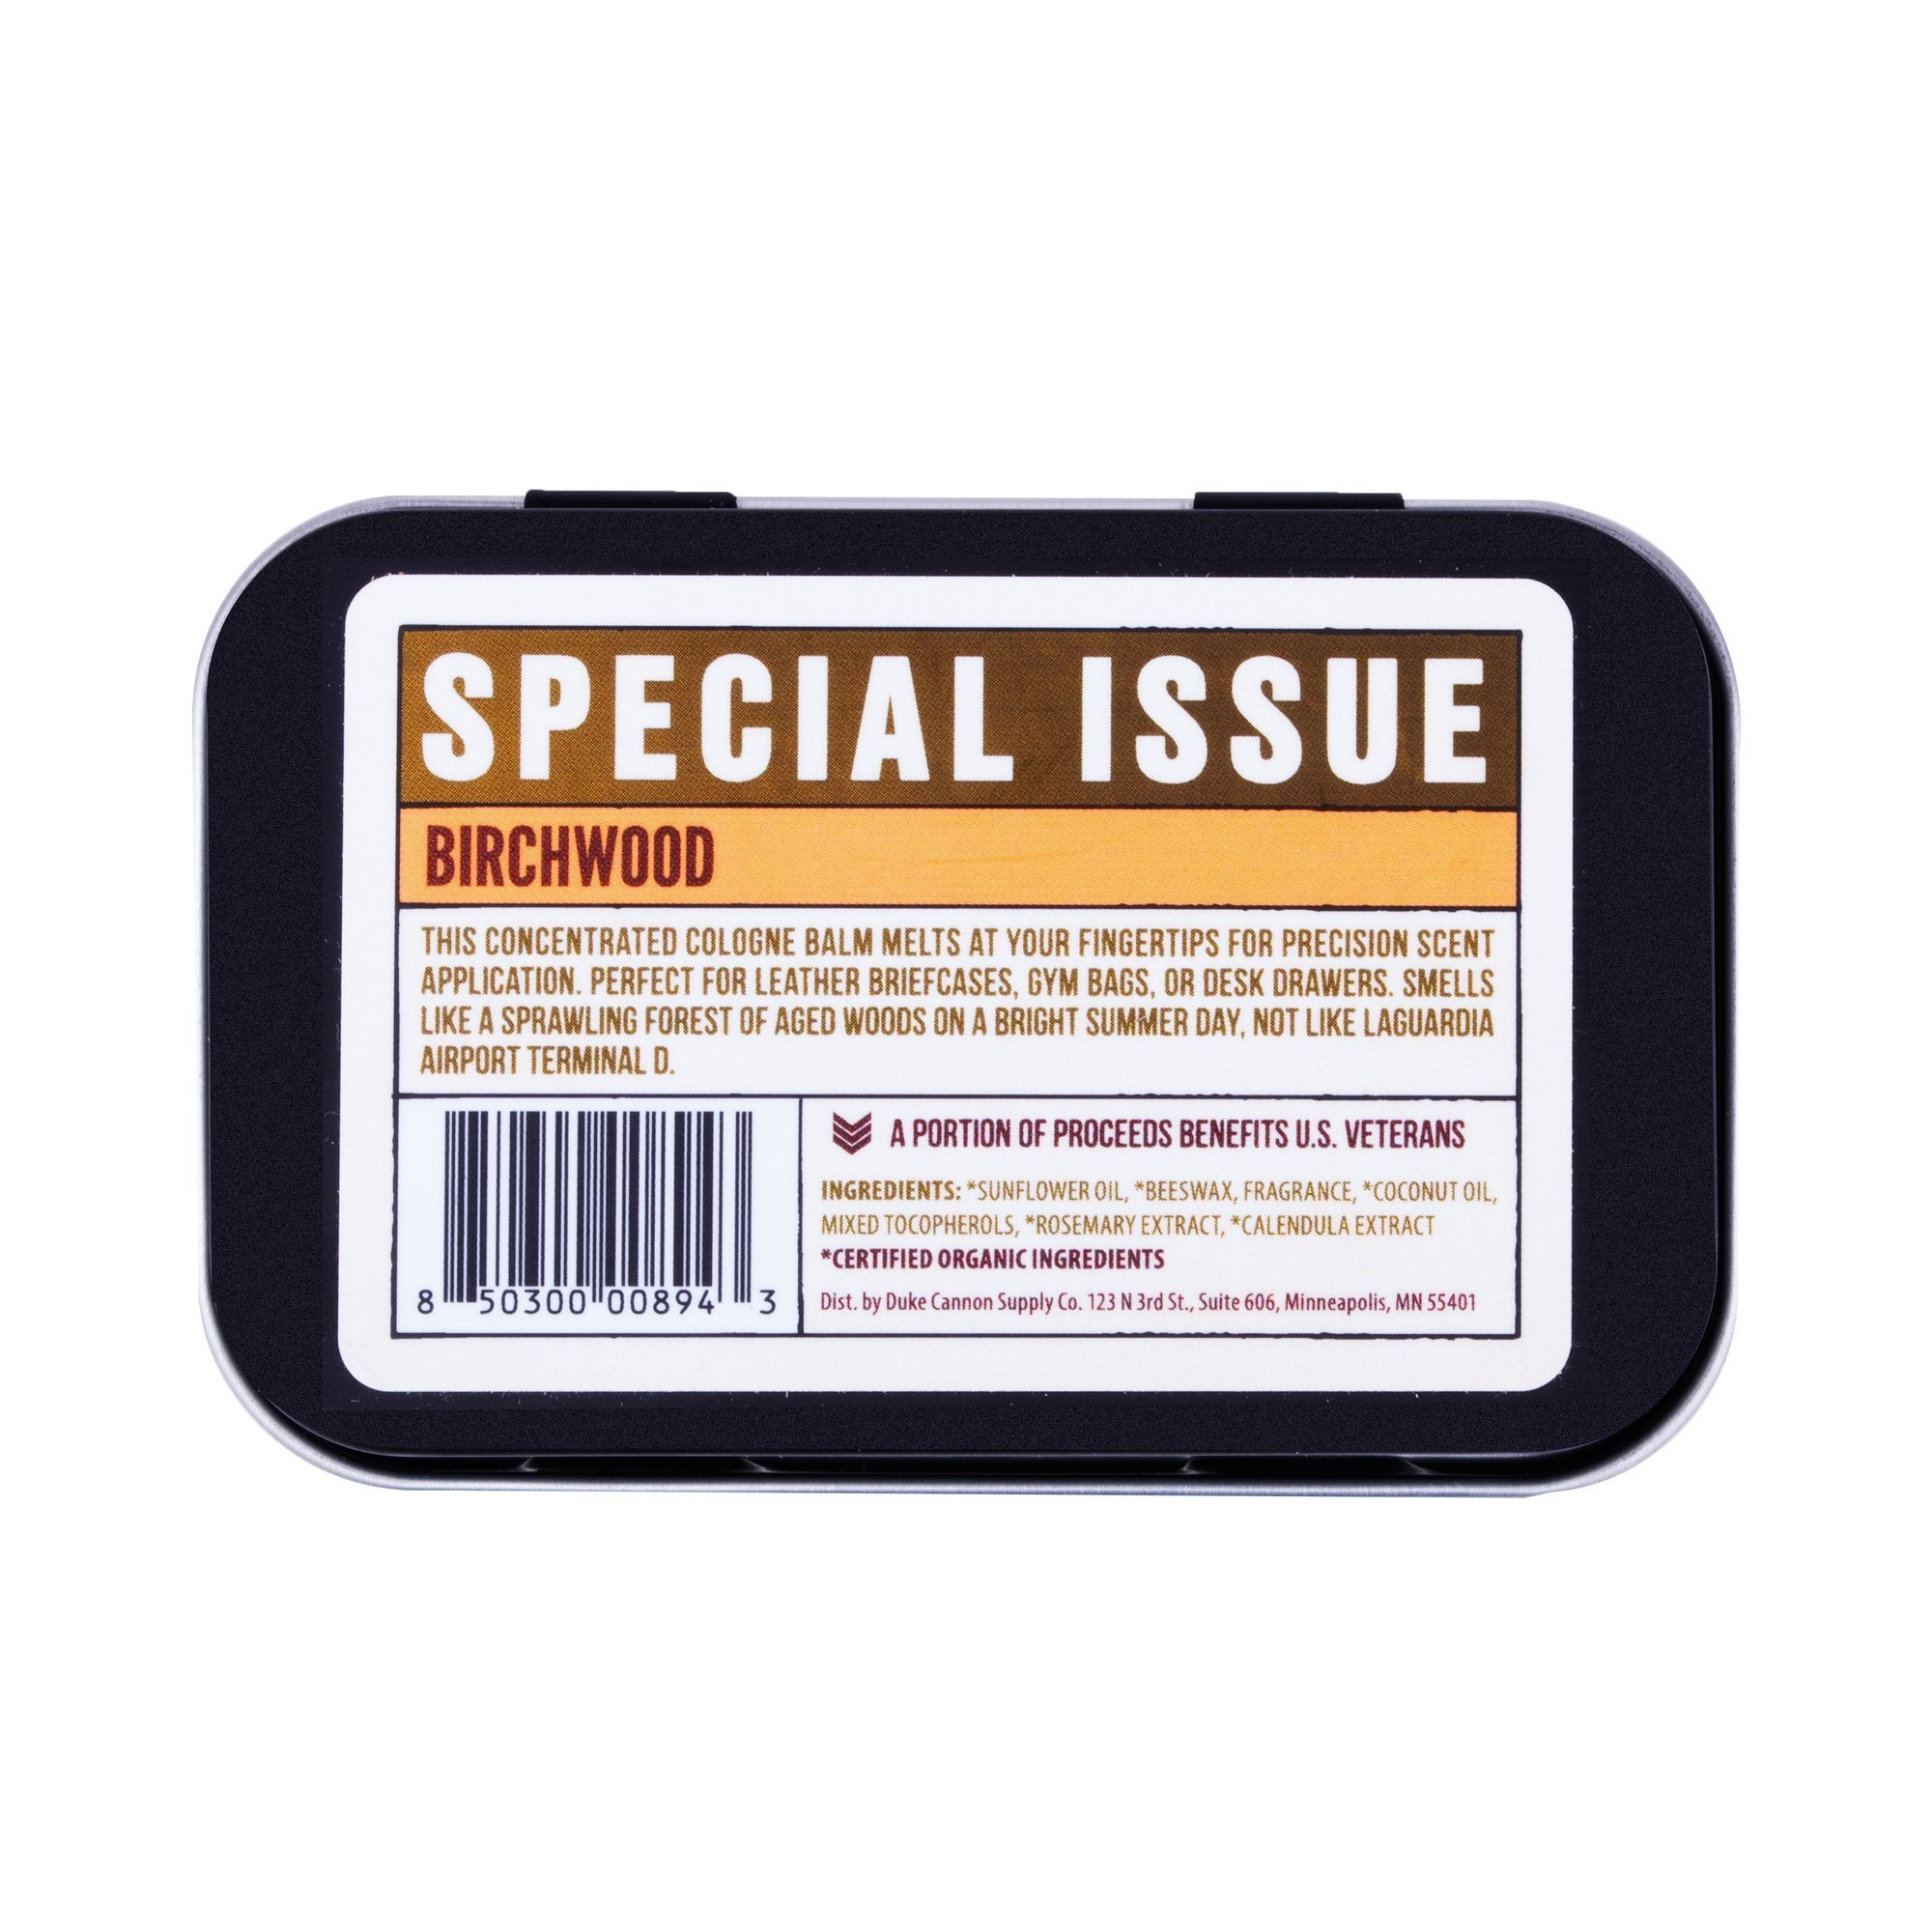 fisher-couture-com-Duke Cannon-Solid Cologne - Birchwood (Special Issue)